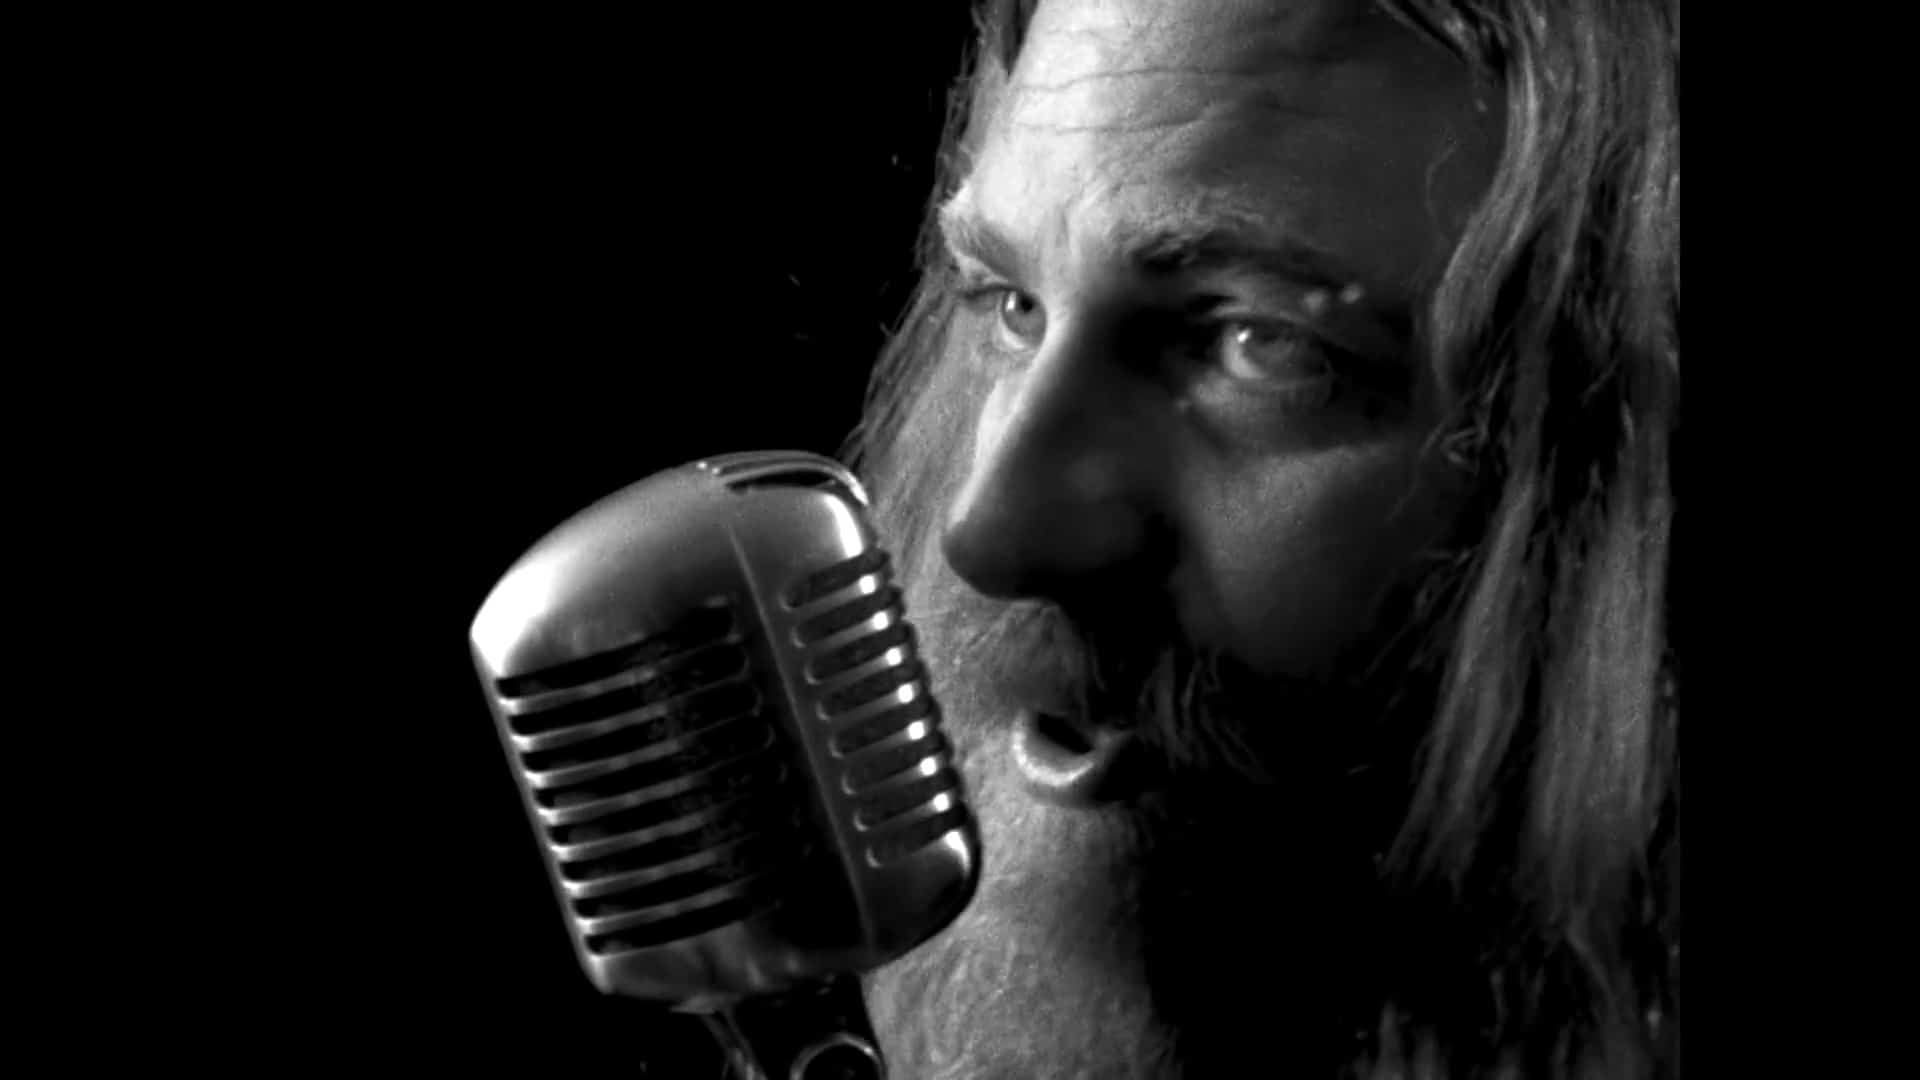 The White Buffalo - Don't You Want It